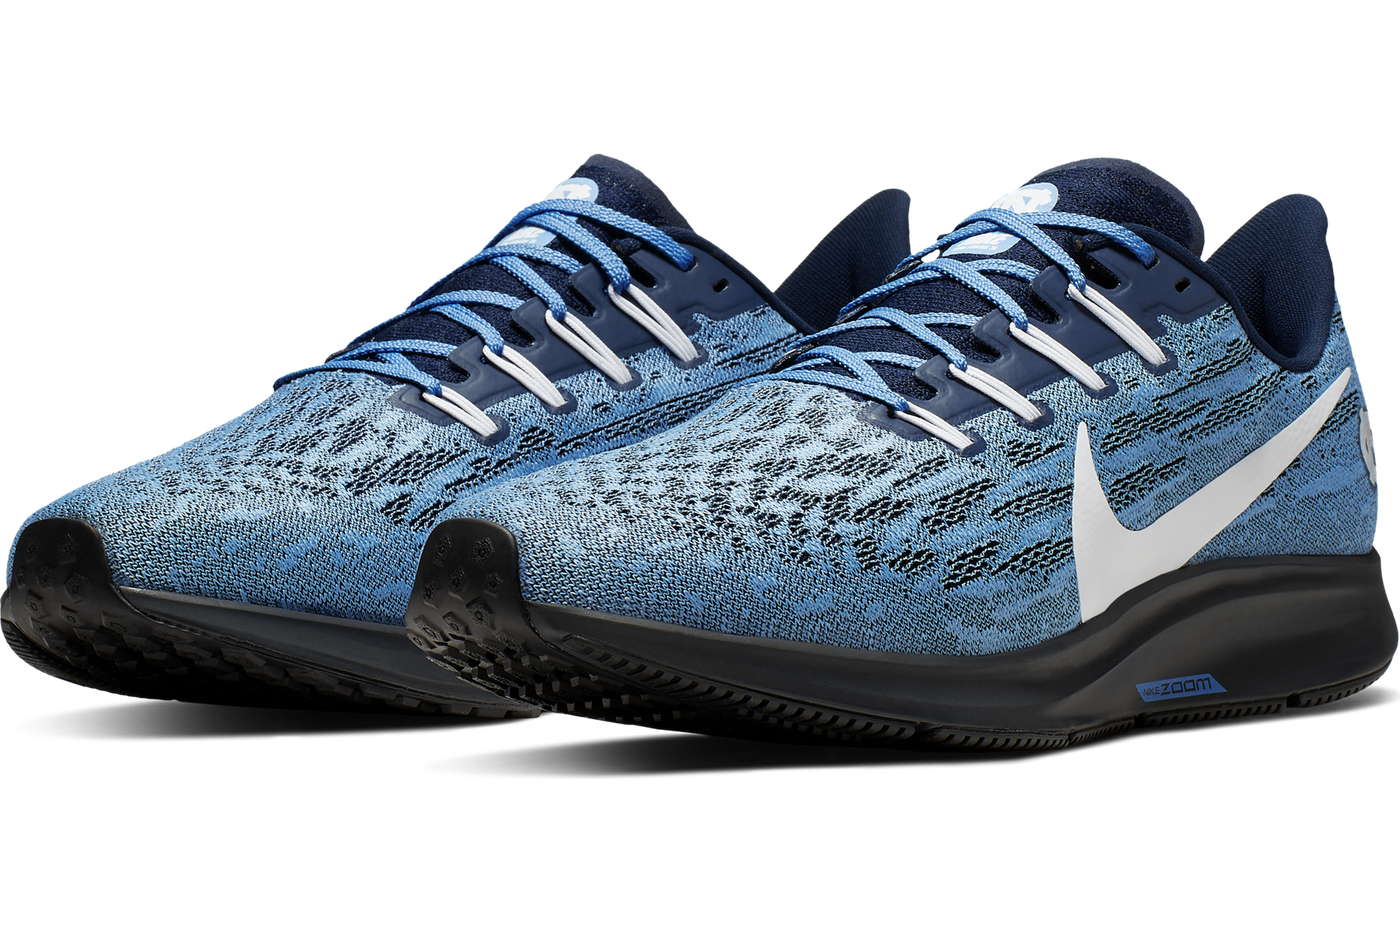 super especiales muy agradable variedades anchas Nike drops the new Air Zoom Pegasus 36 UNC shoe! - Tar Heel Blog